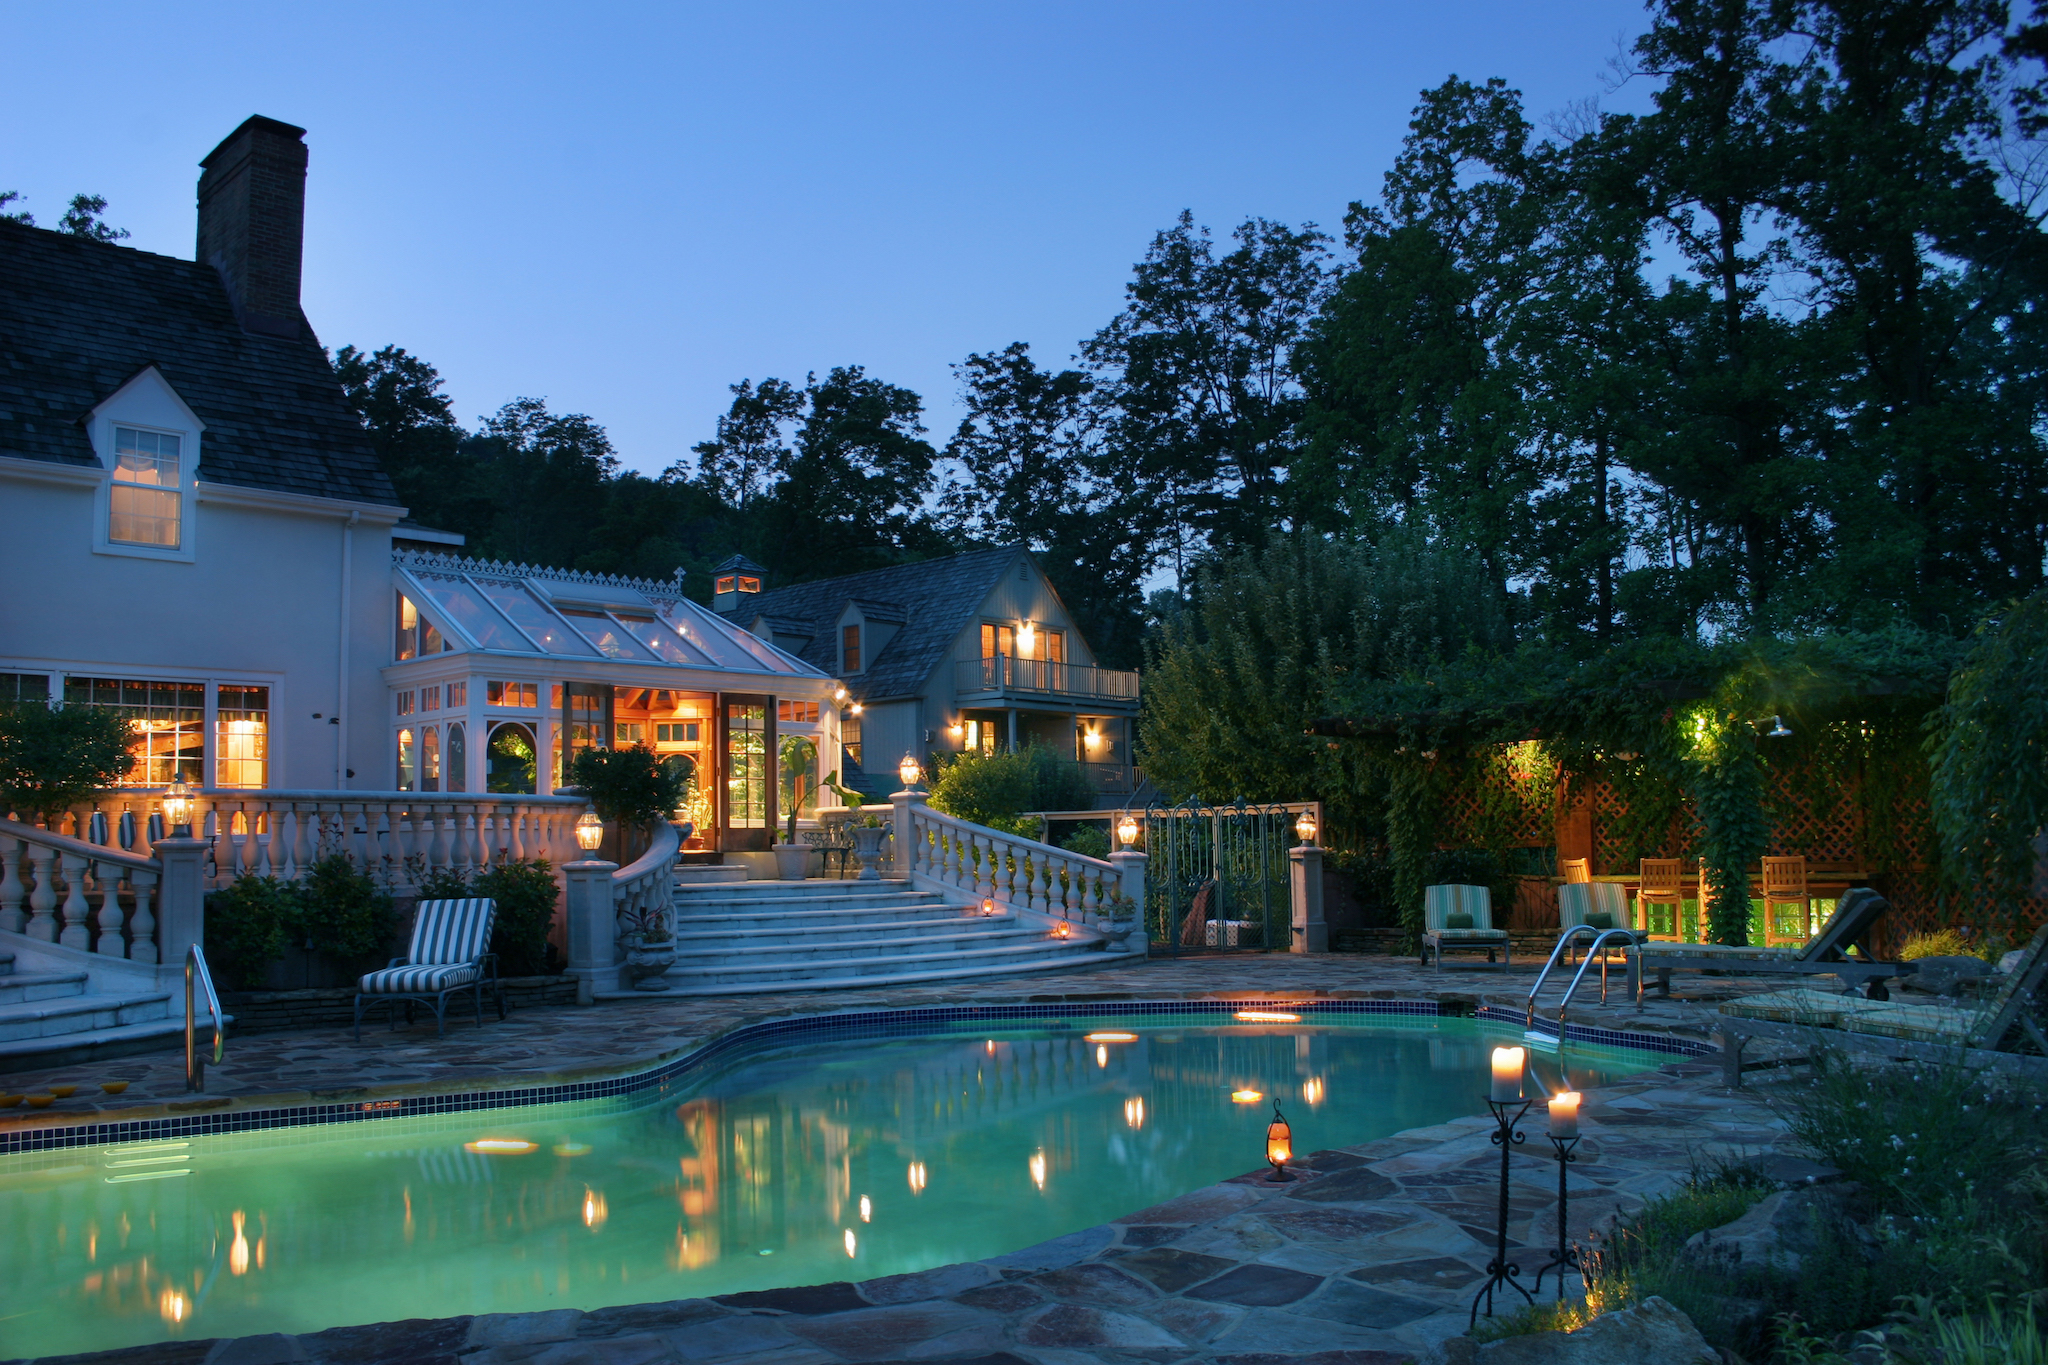 Check out the gorgeous pool at New Hope bed and breakfast Inn at Bowman's Hill